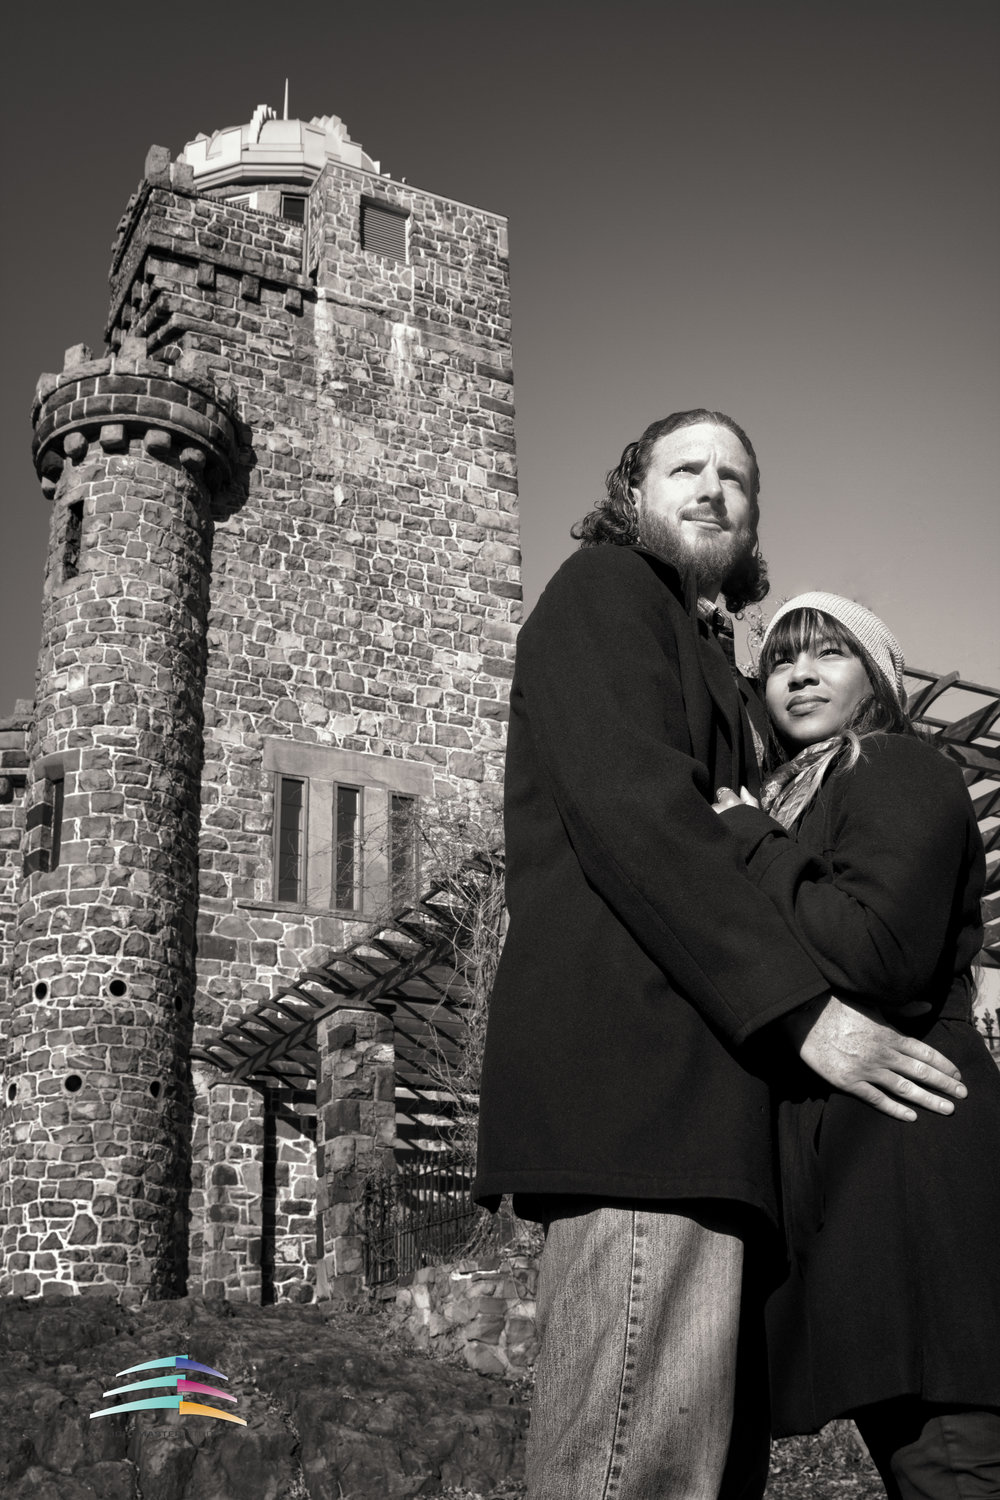 Engagement-session-mixed-couple-black-&-White-image-december-shoot-ideas-Castle-new-jersey i do bridal, i do i do bride engagement session